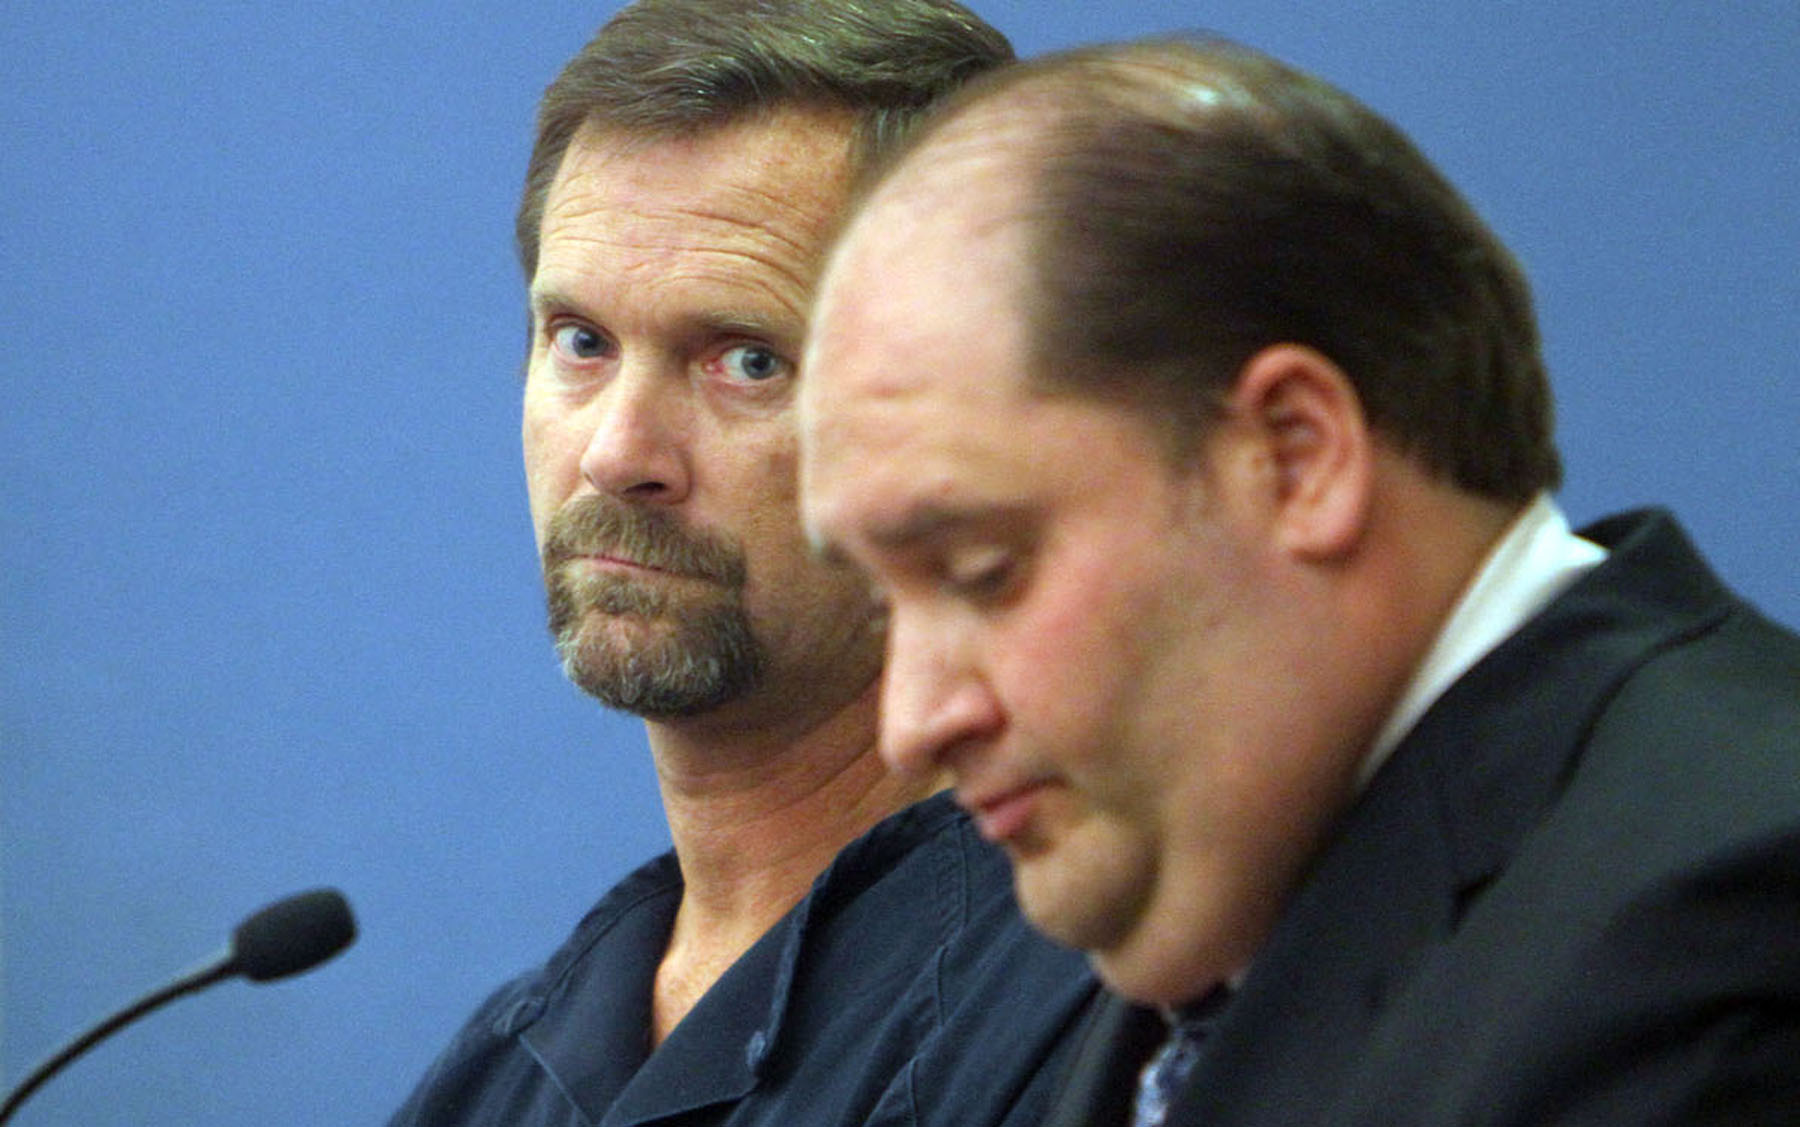 Danny Sidders,left,a suspended Orlando police officer attends hearing at Orange County Jail.Sidders is accused of beating girlfriend.